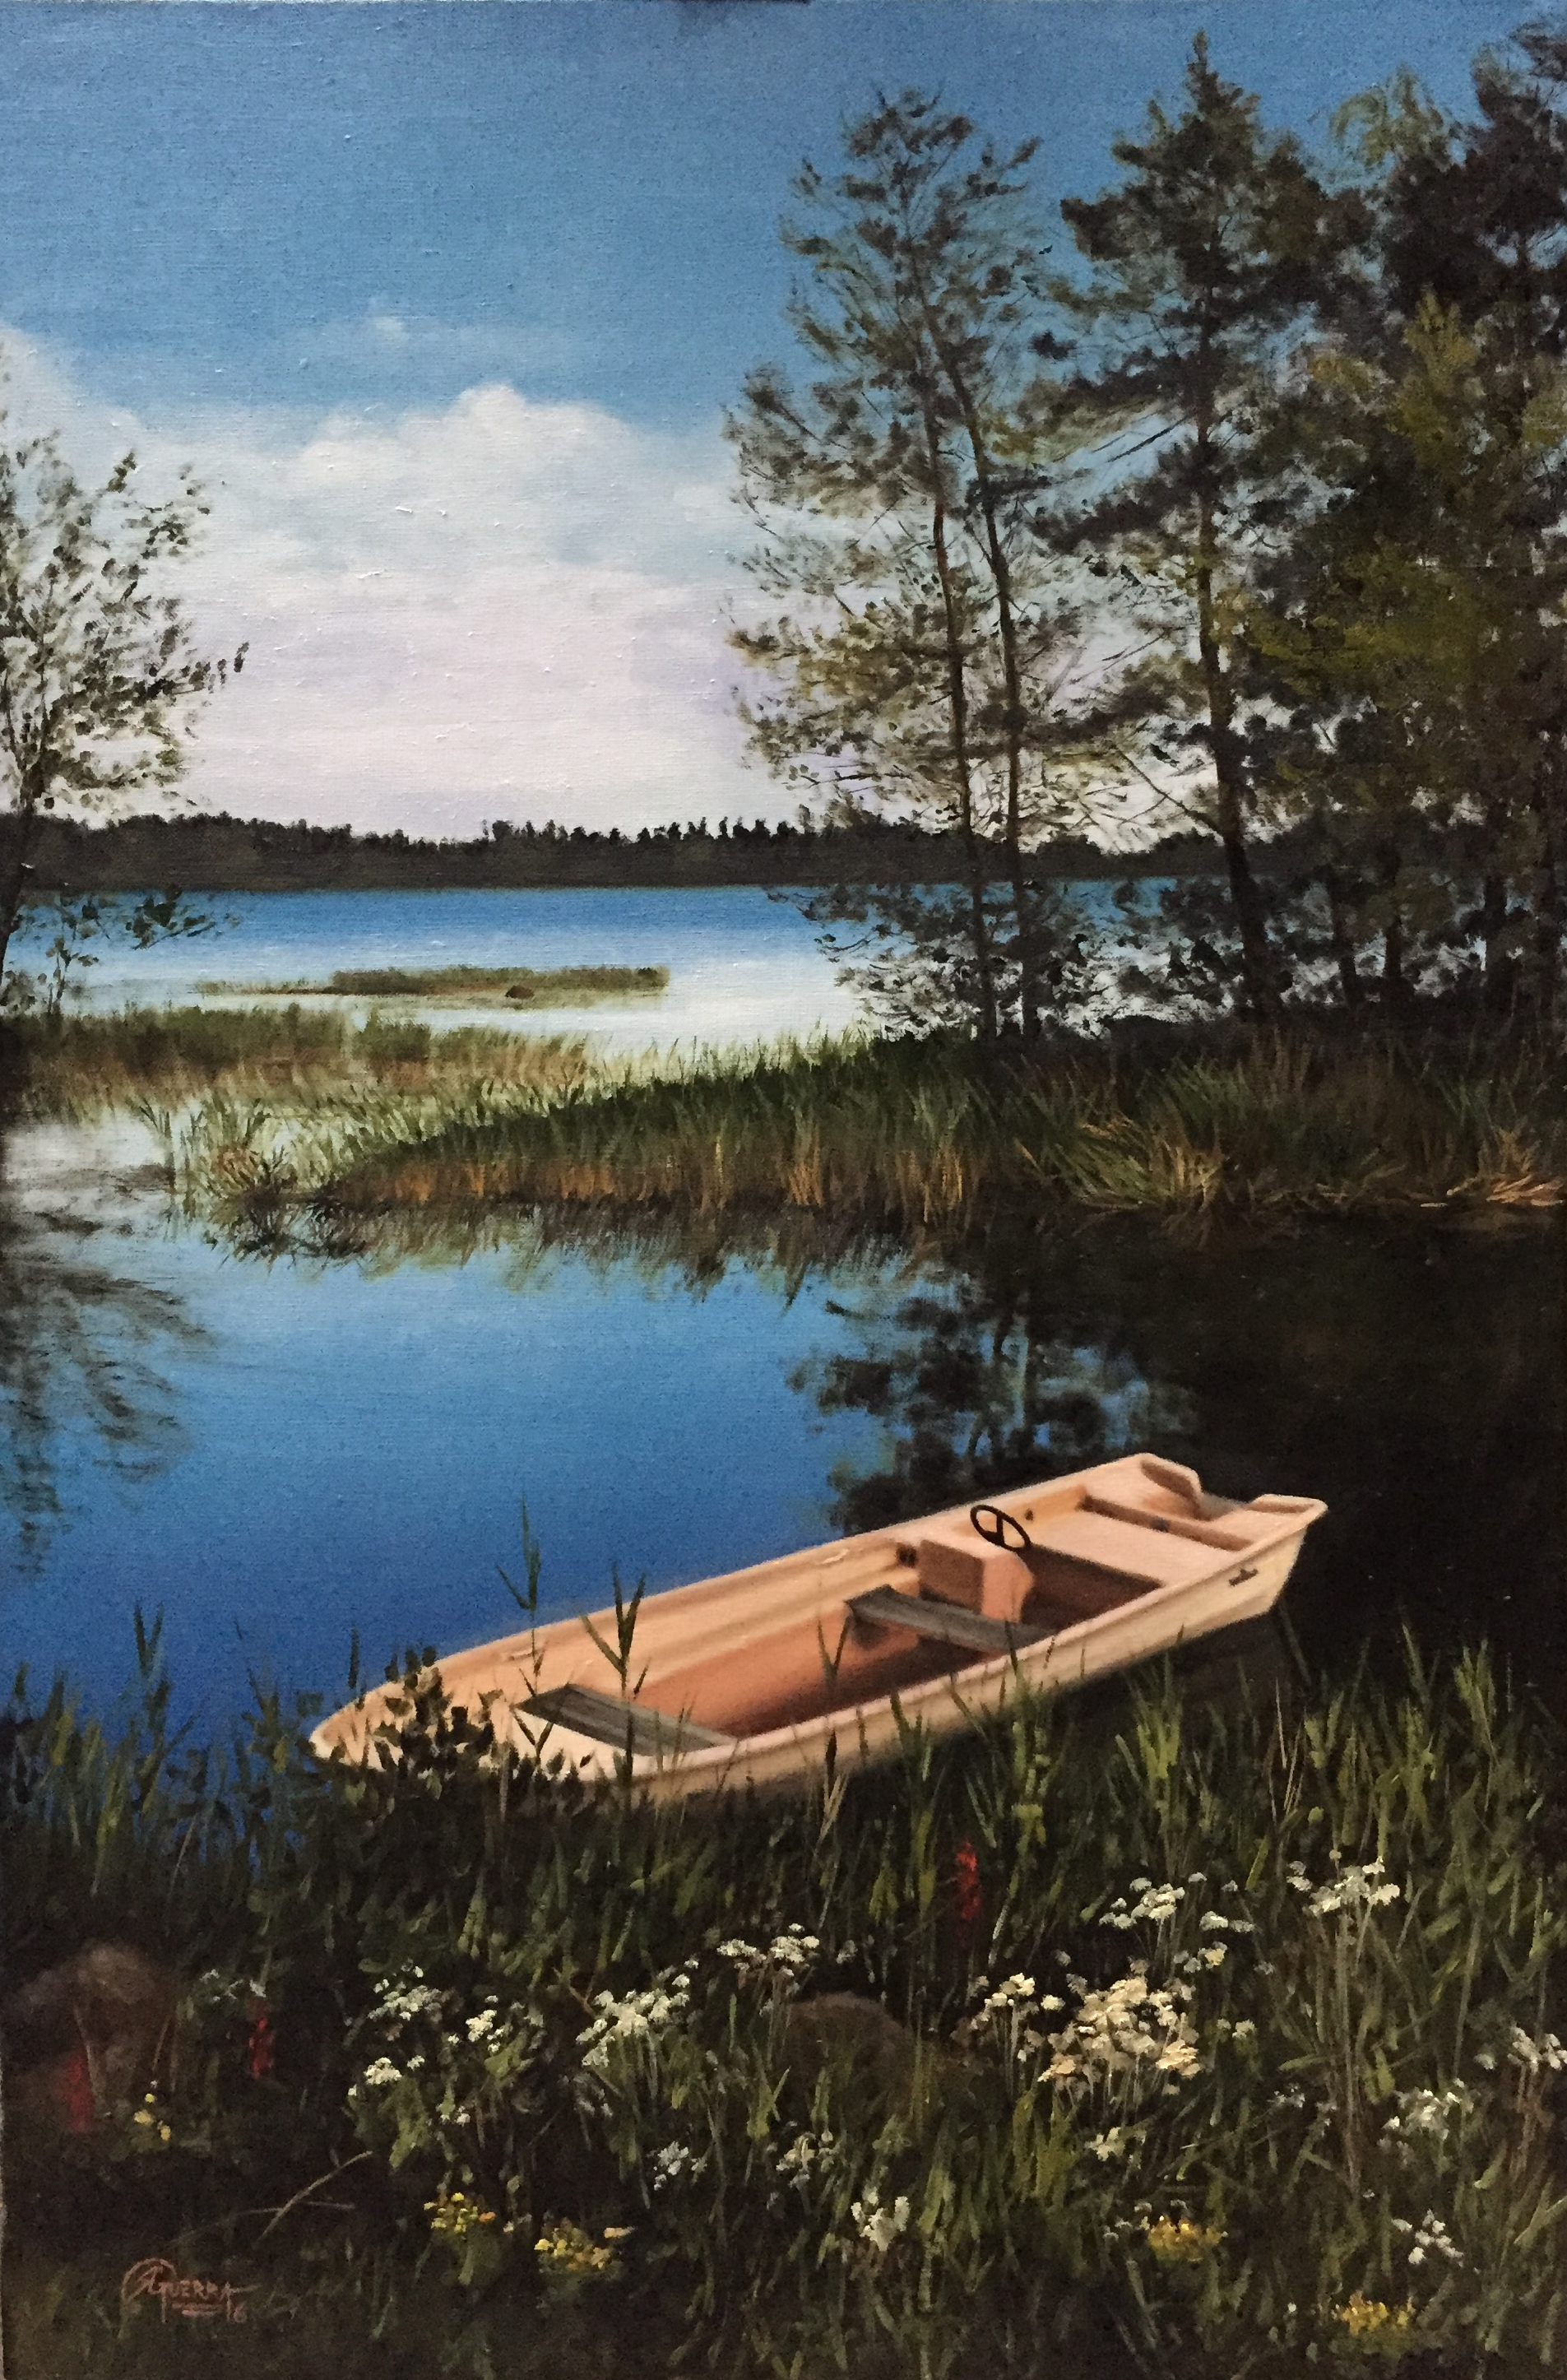 A Boat on a Lake in Finland, Rafael Guerra Painting